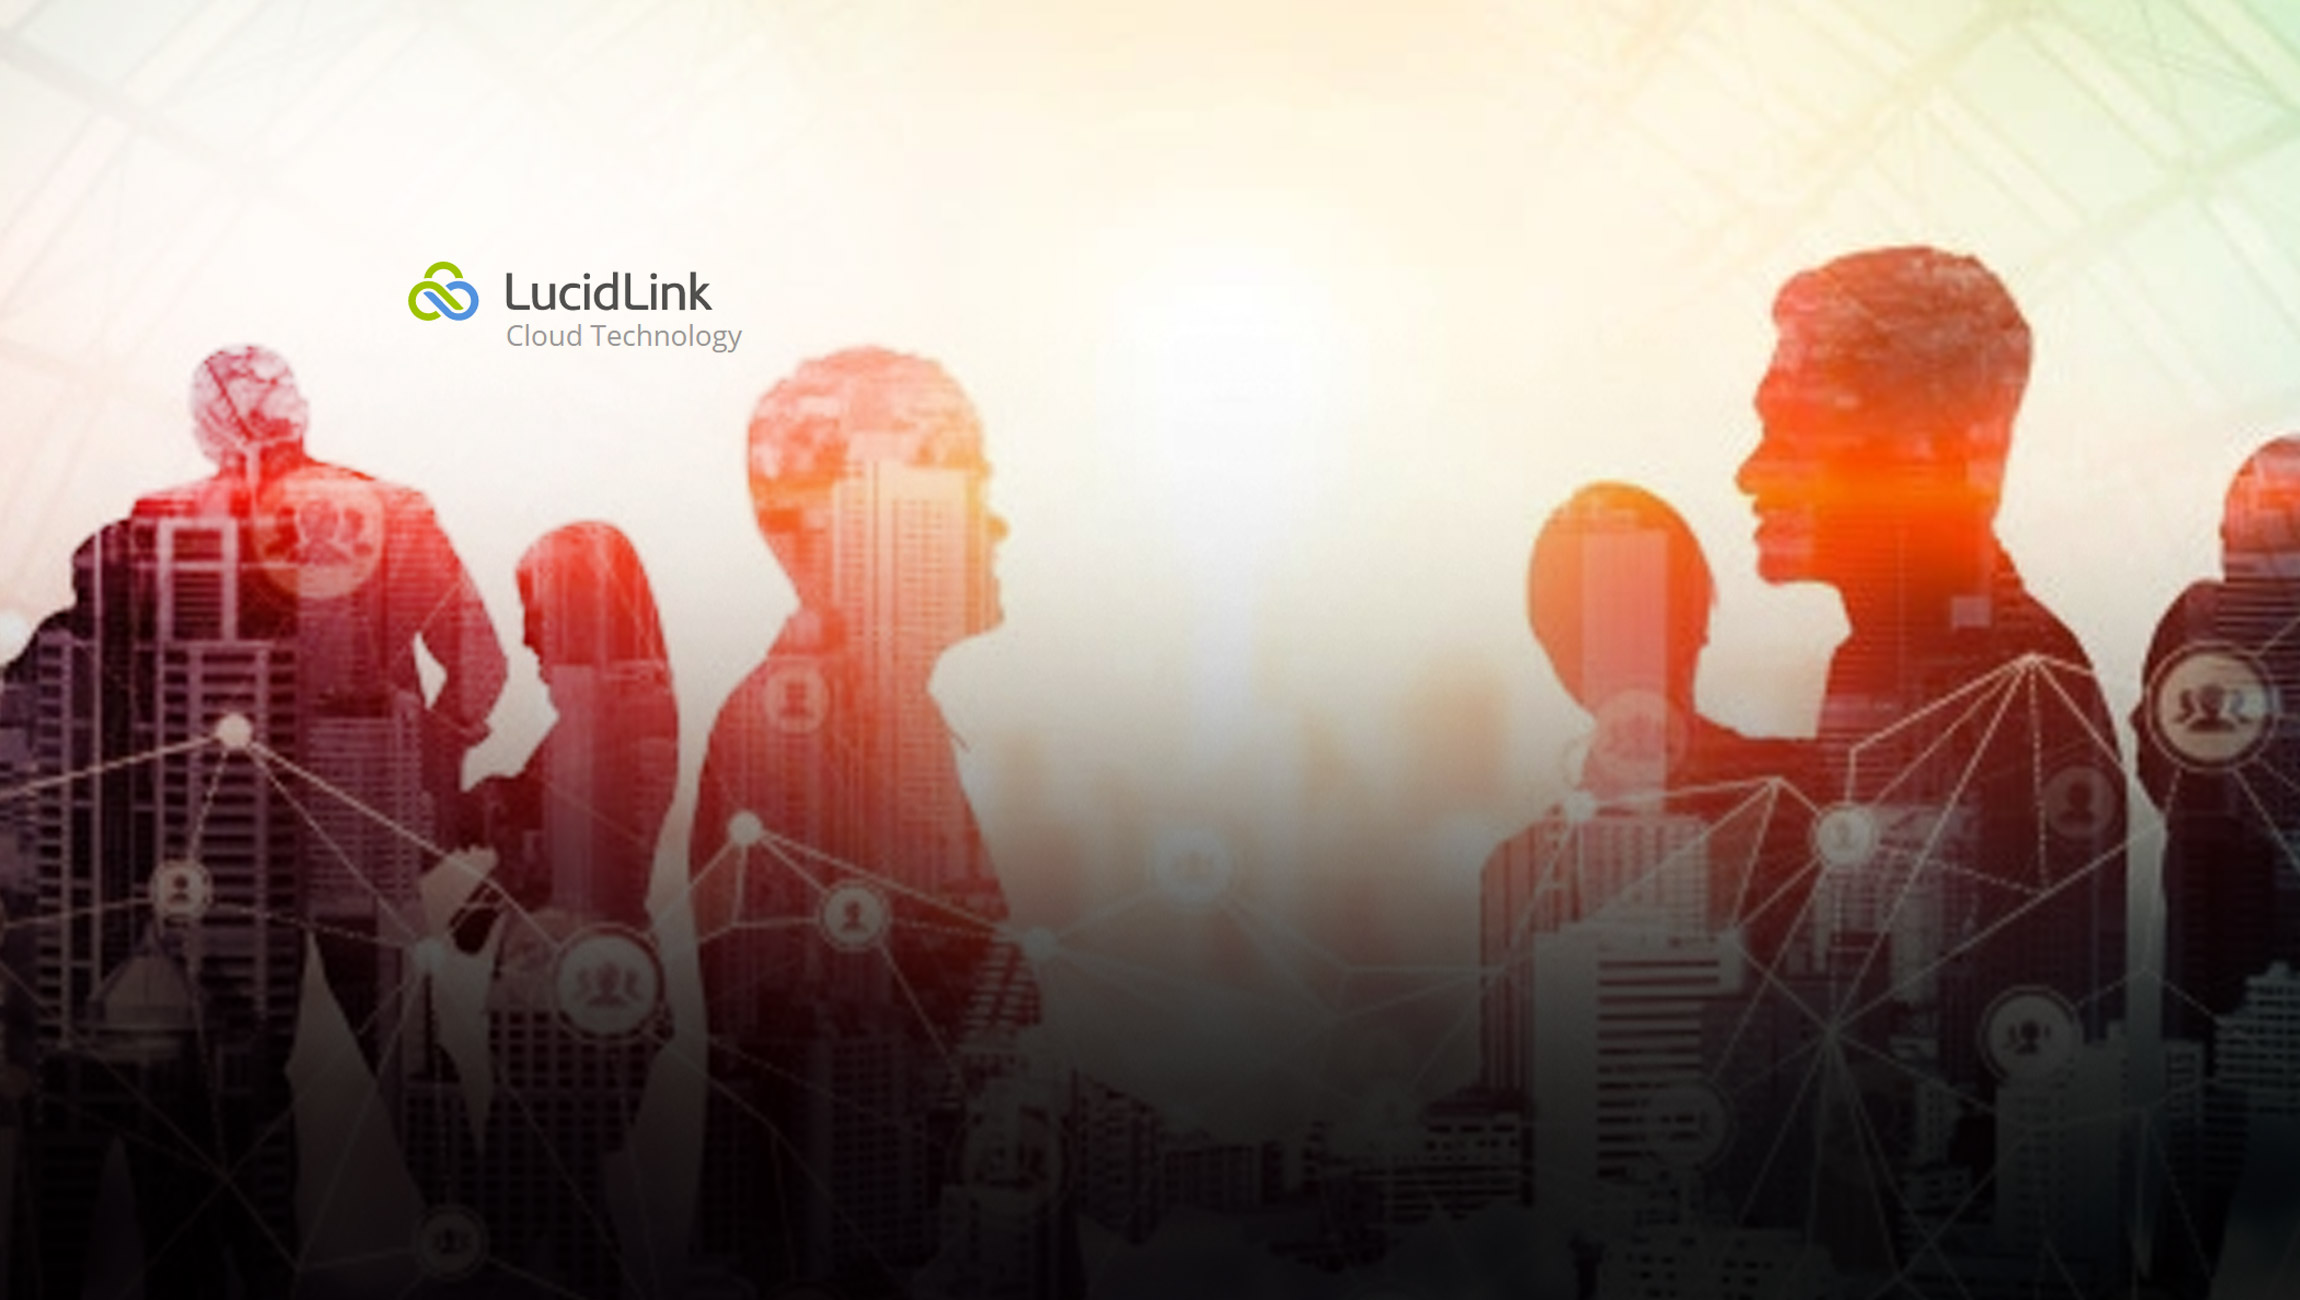 LucidLink Rapidly Rolls Out Single Sign-on with Identity Management Firm - Okta